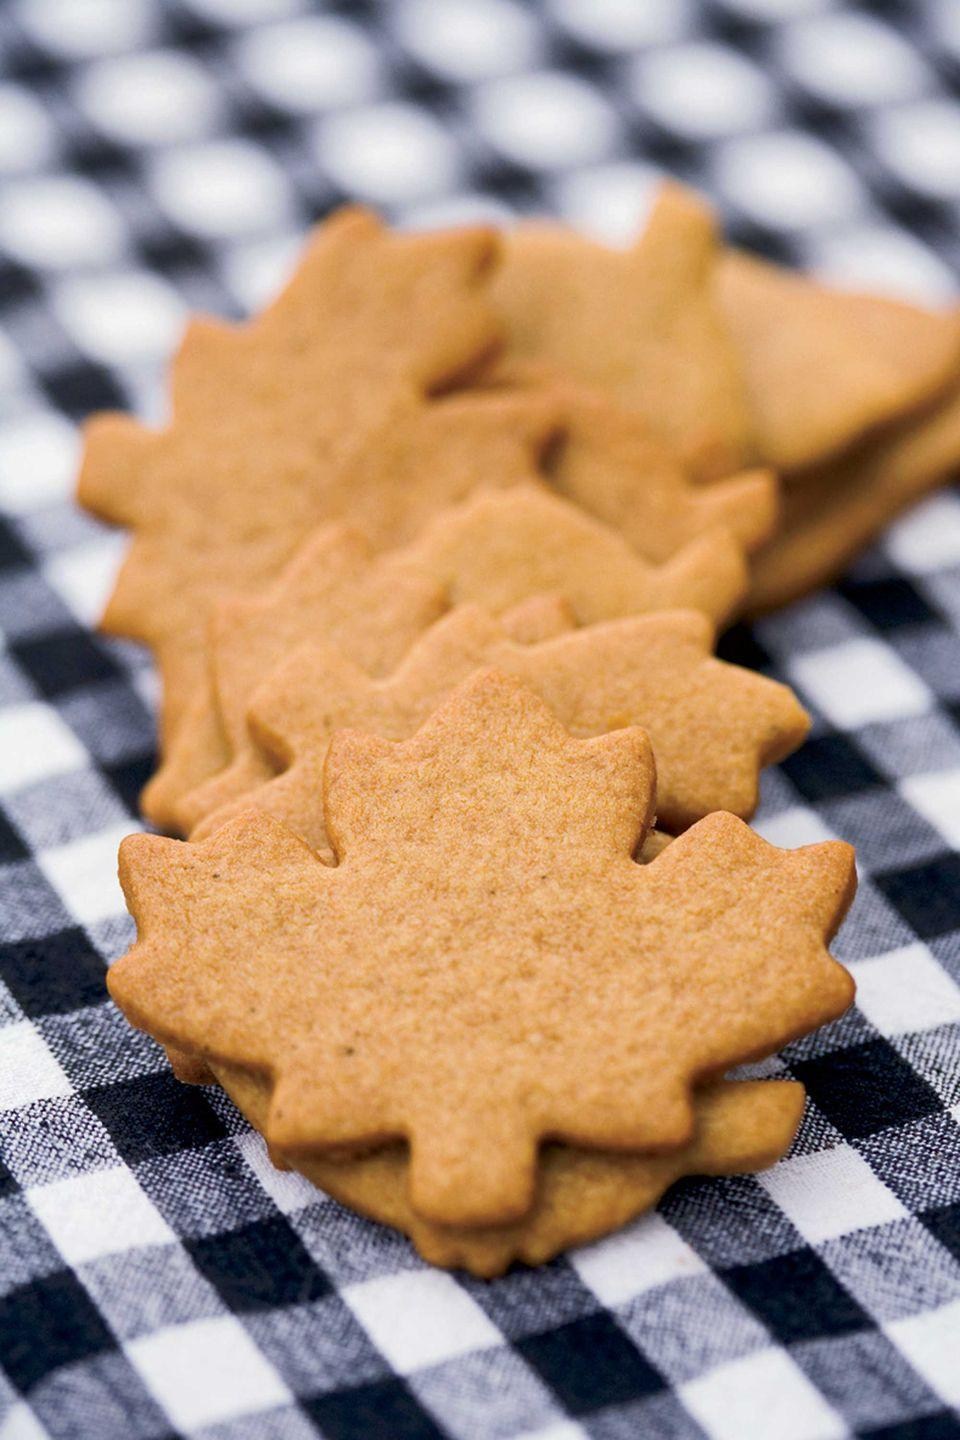 """<p>This recipe will yield plenty of cookies, which is perfect for baking big batches for trick-or-treaters or a Halloween party. Store the extra dough in the freezer and make smaller batches whenever the mood strikes! </p><p><strong><a href=""""https://www.countryliving.com/food-drinks/recipes/a1934/cookie-cutter-ginger-crisps-clv1007/"""" rel=""""nofollow noopener"""" target=""""_blank"""" data-ylk=""""slk:Get the recipe"""" class=""""link rapid-noclick-resp"""">Get the recipe</a>.</strong></p>"""